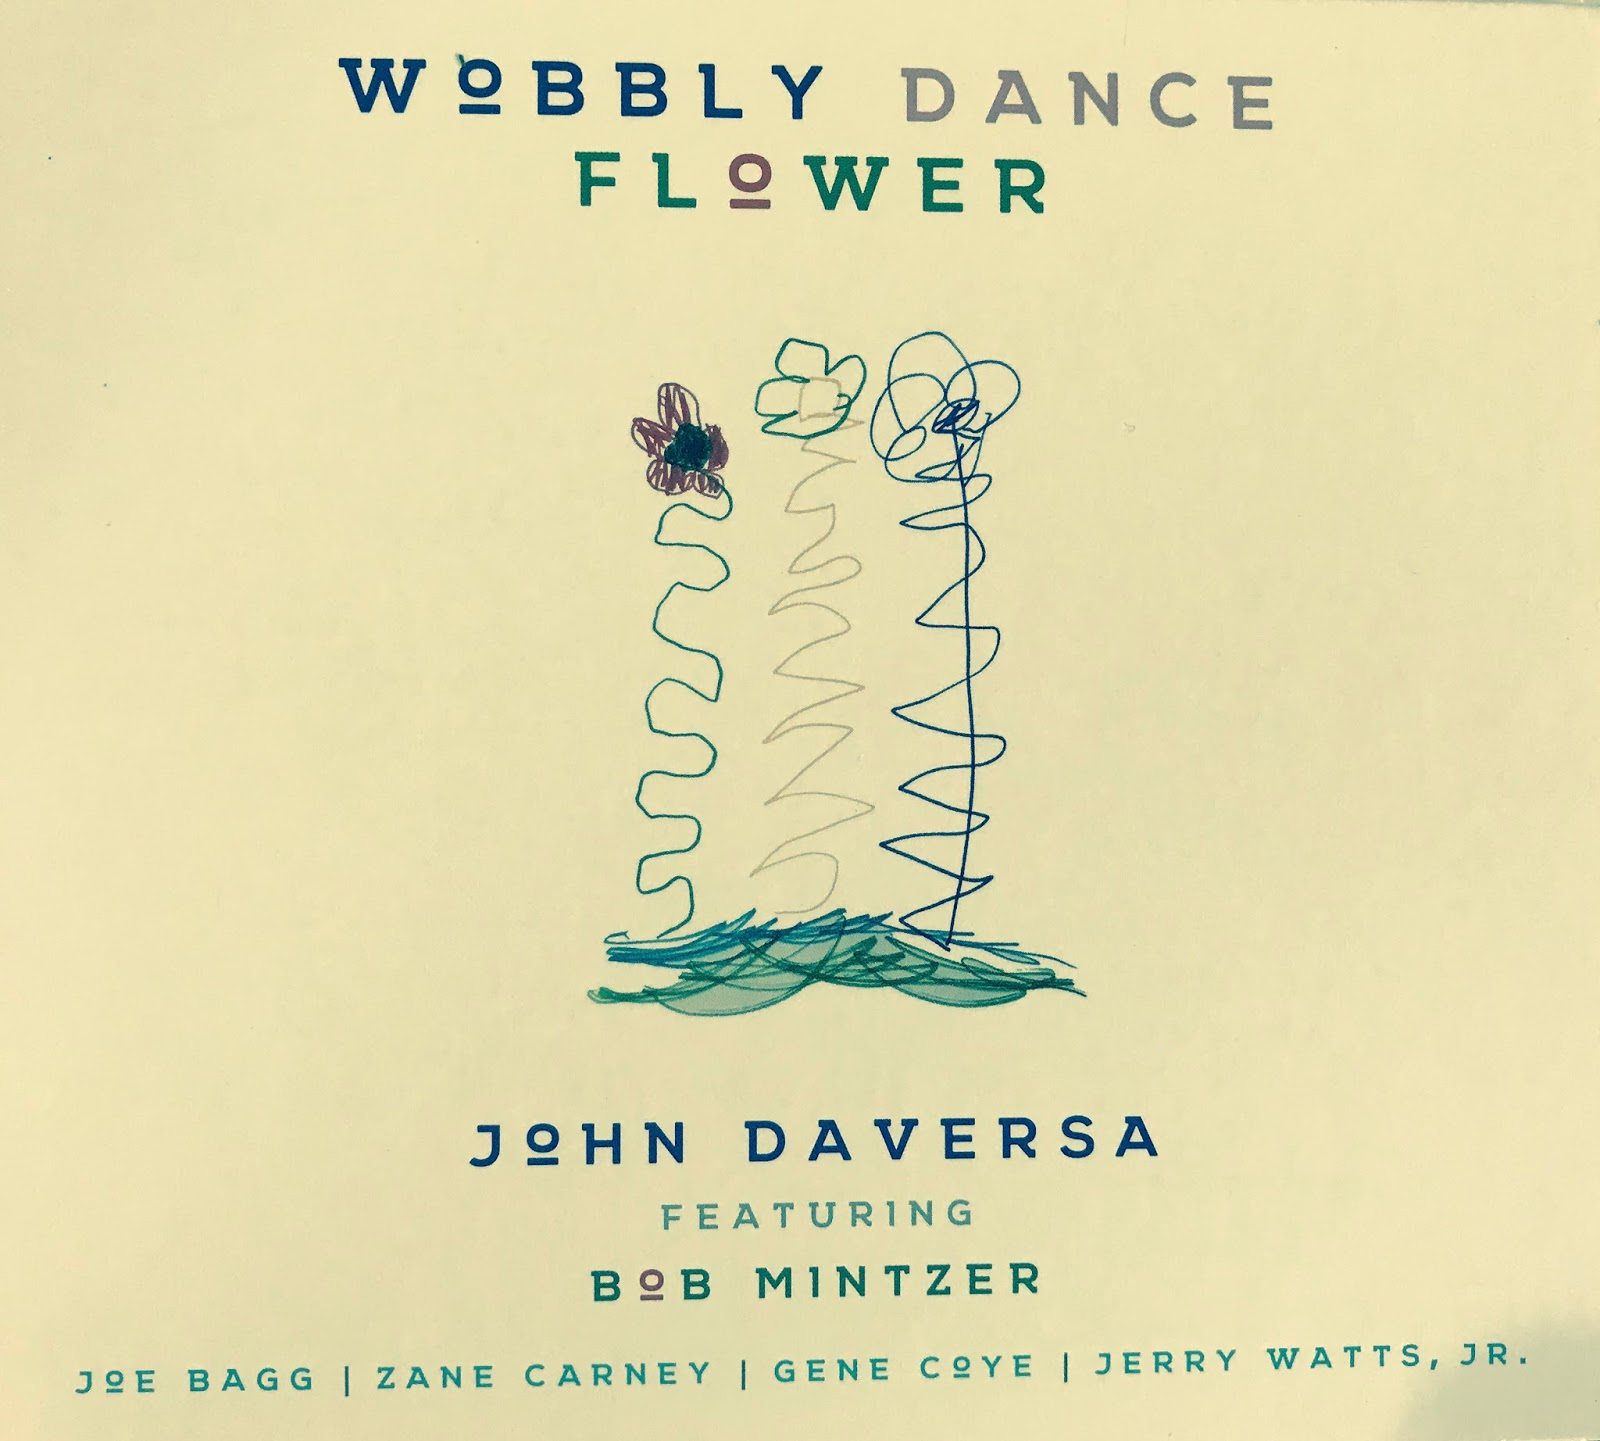 Image result for John Daversa Wobbly Dance Flower